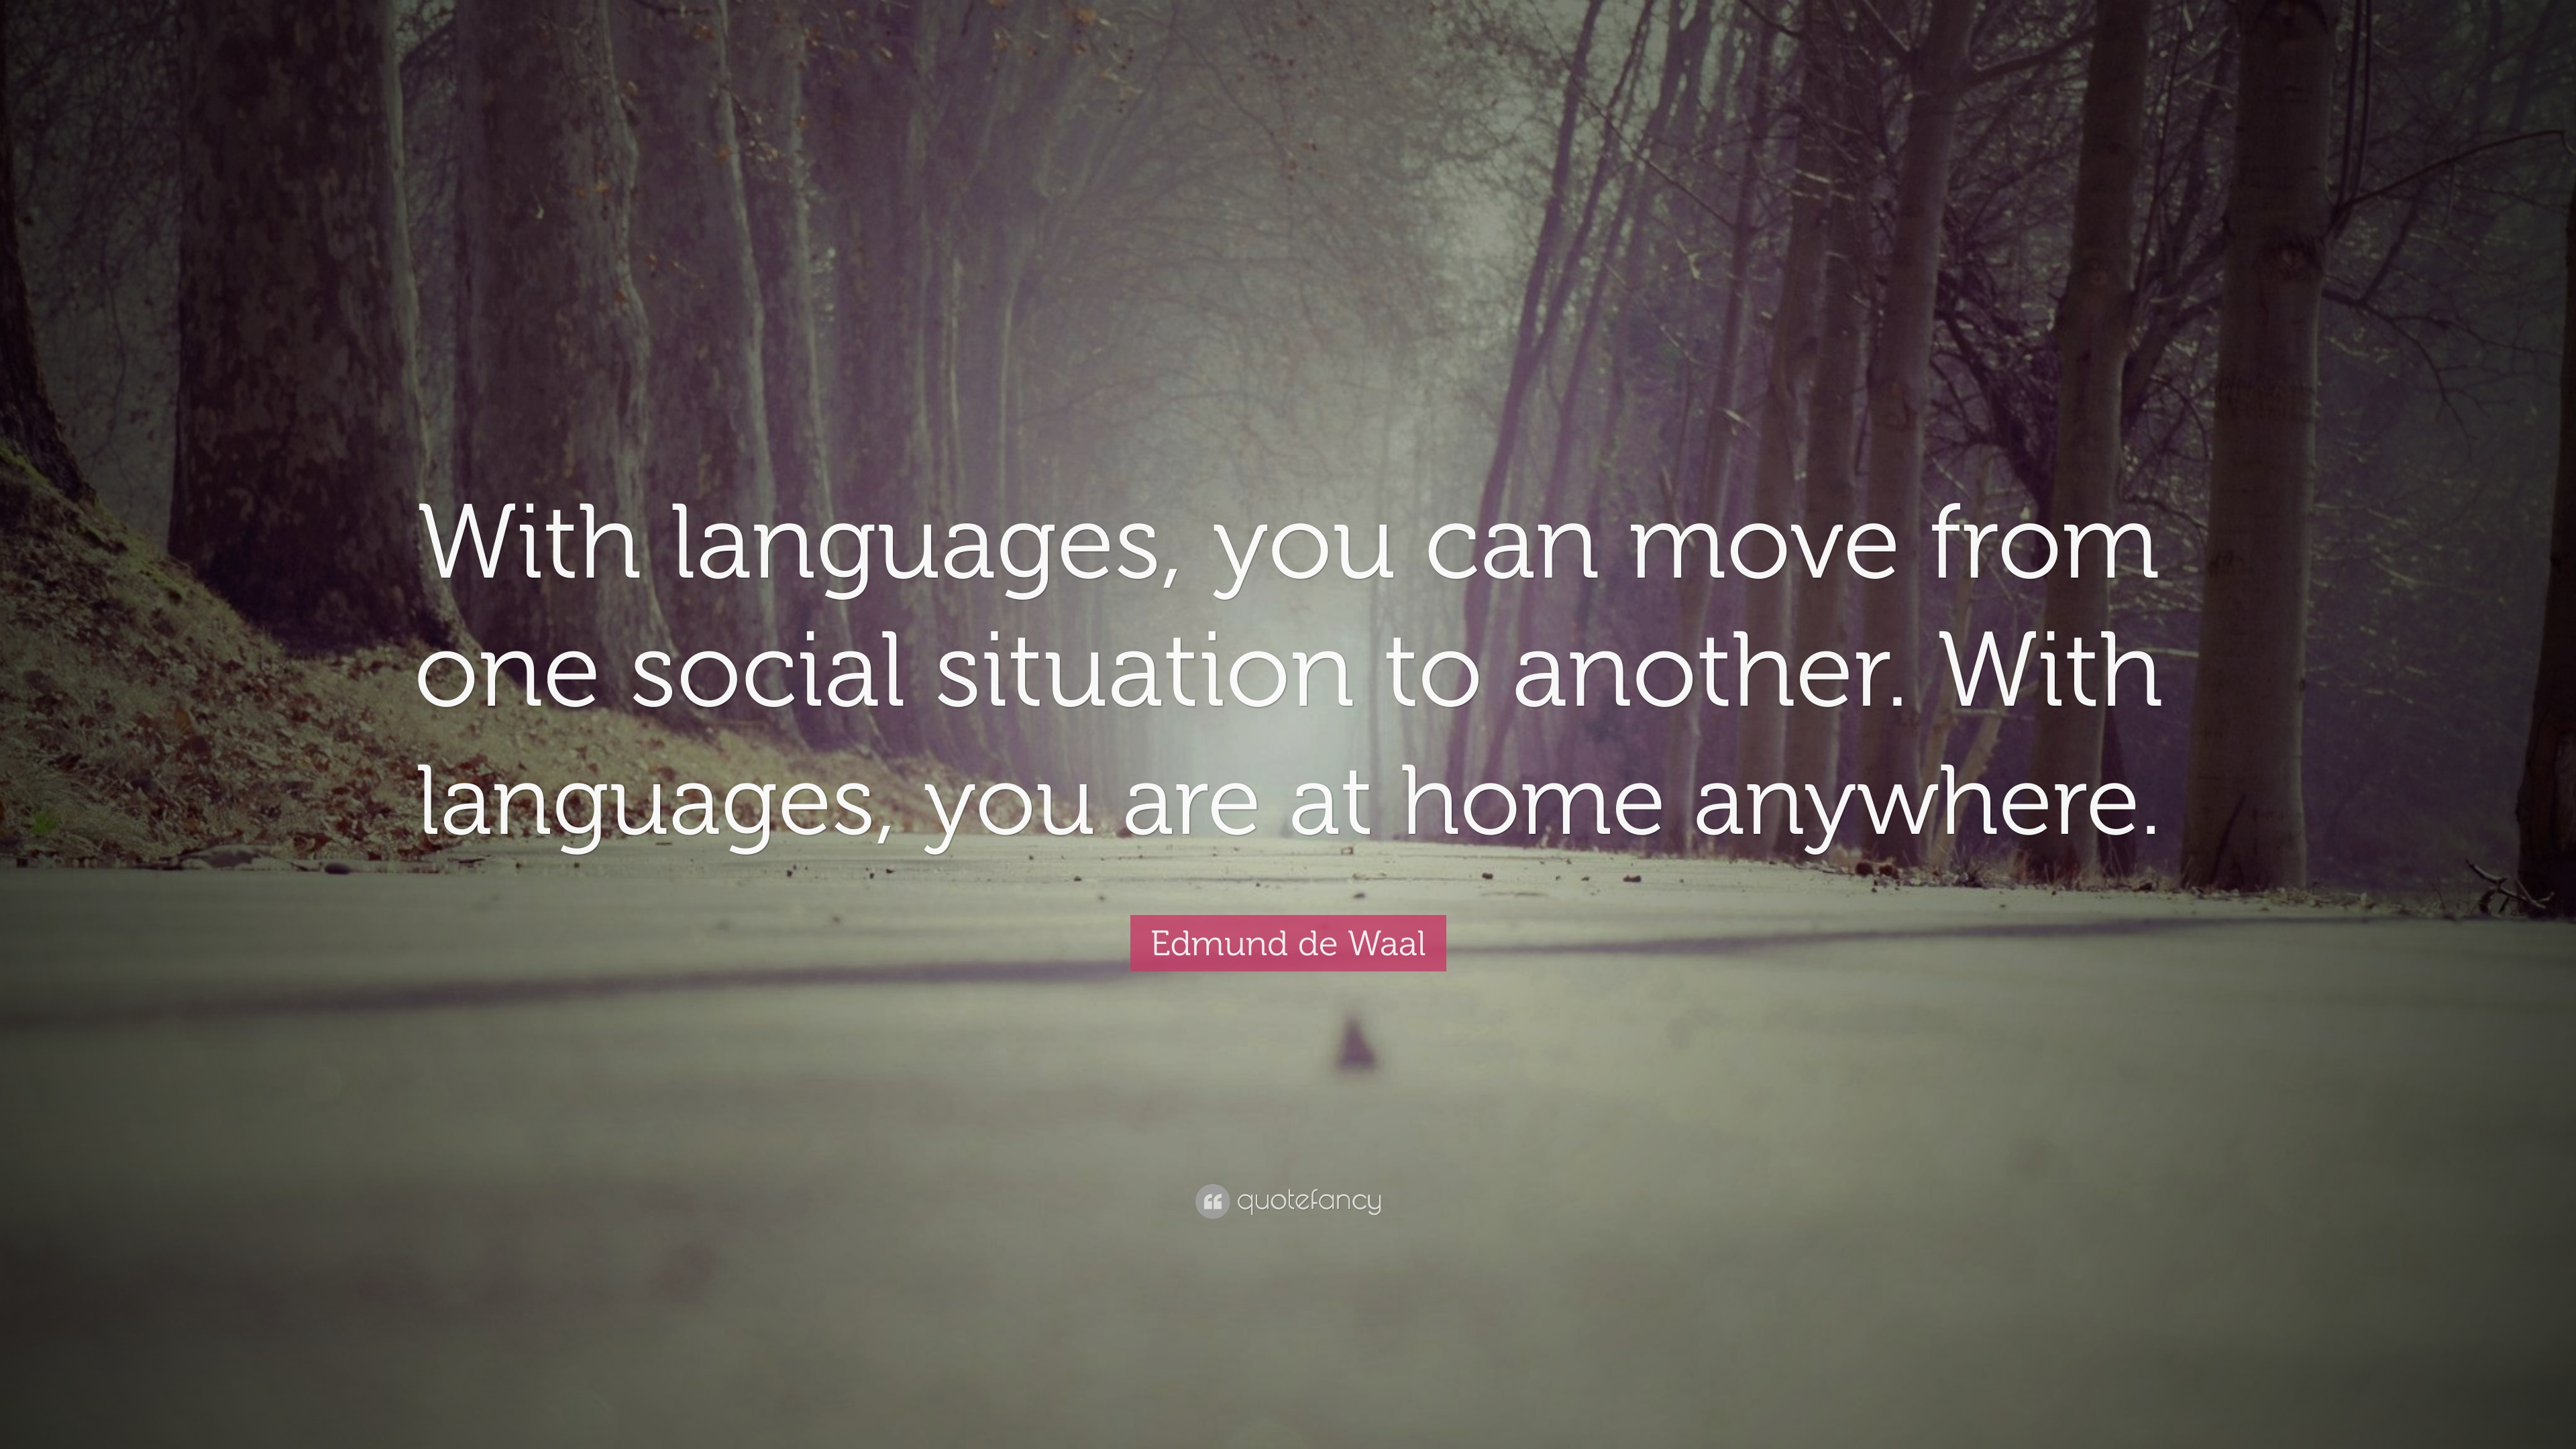 Athome De edmund de waal quote with languages you can move from one social